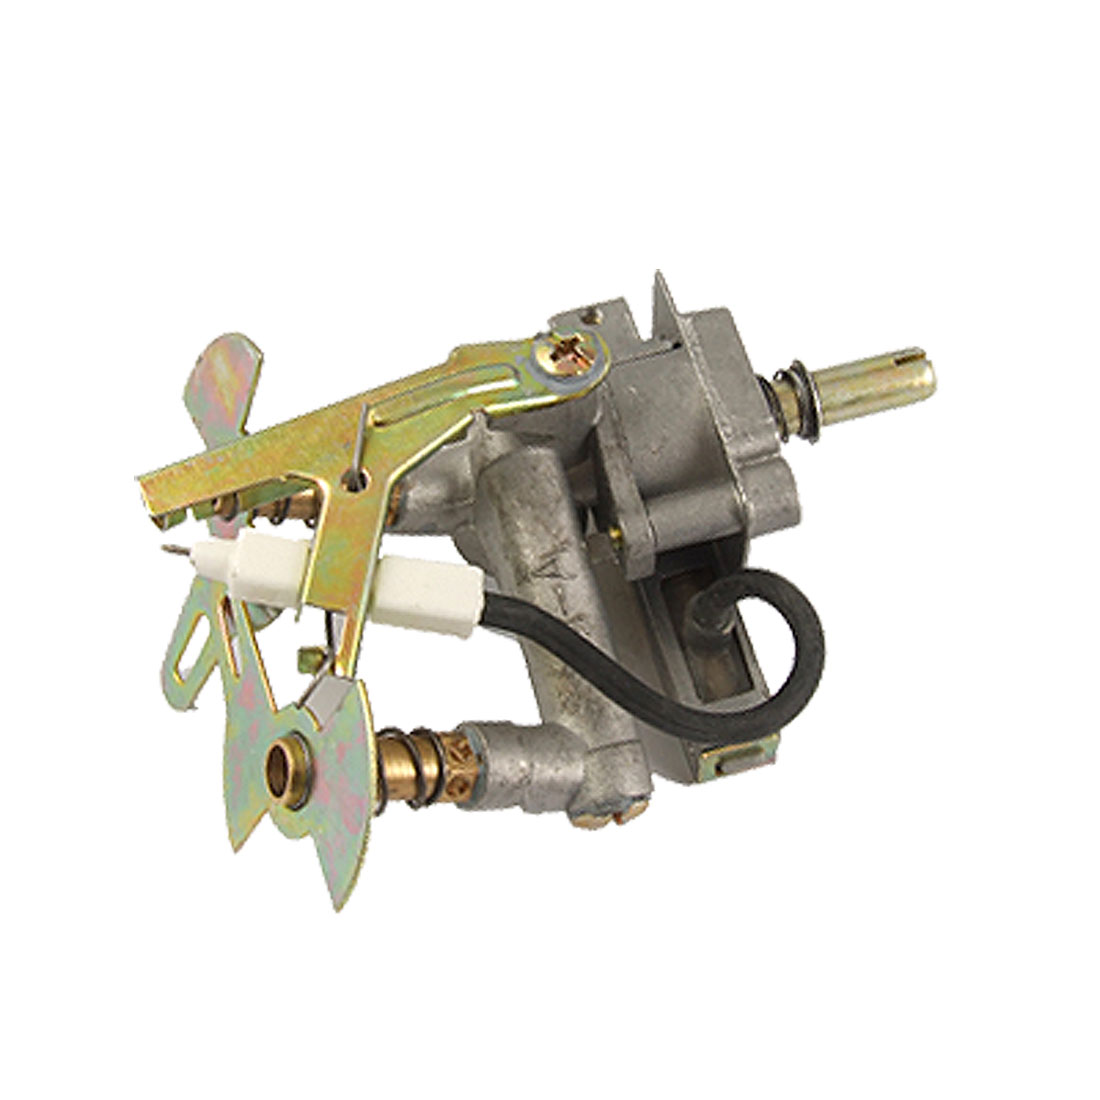 LPG Gas Stove Cooker Replacement Ignition Valve Part